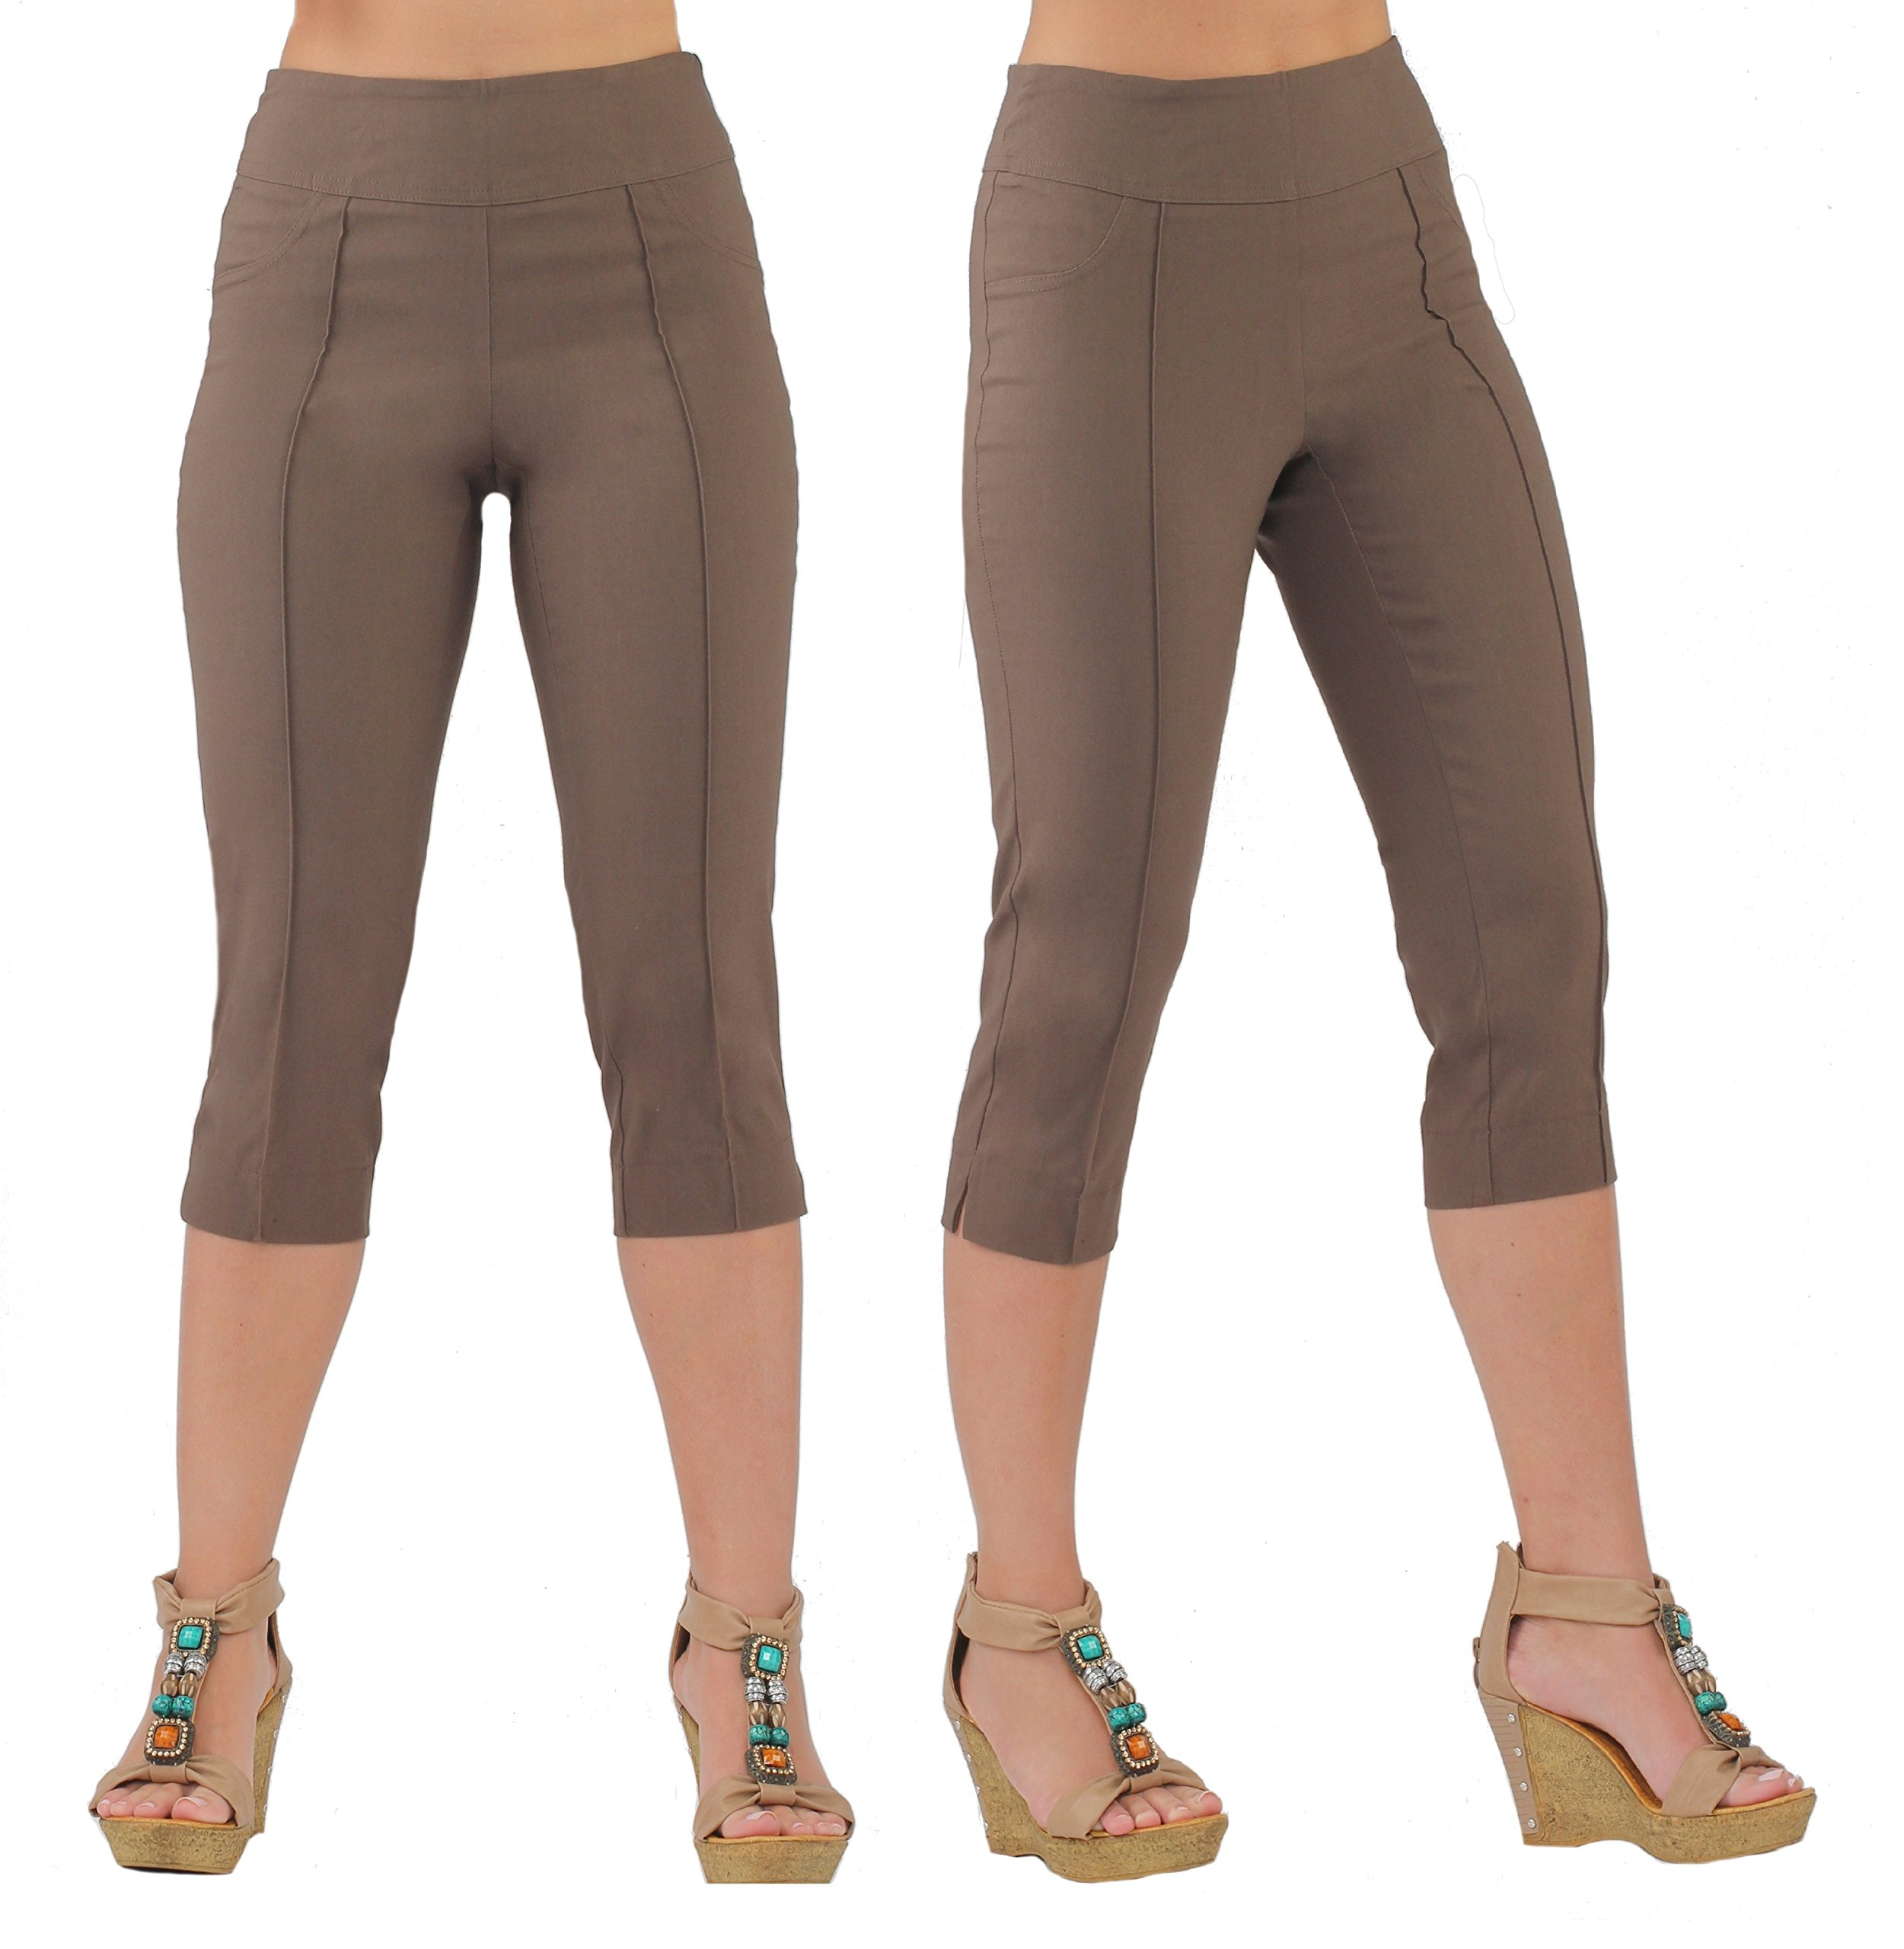 Lior Paris Women's LUNA Tapered Leg Pull on Capri with Top Stitching Details (5,Taupe)